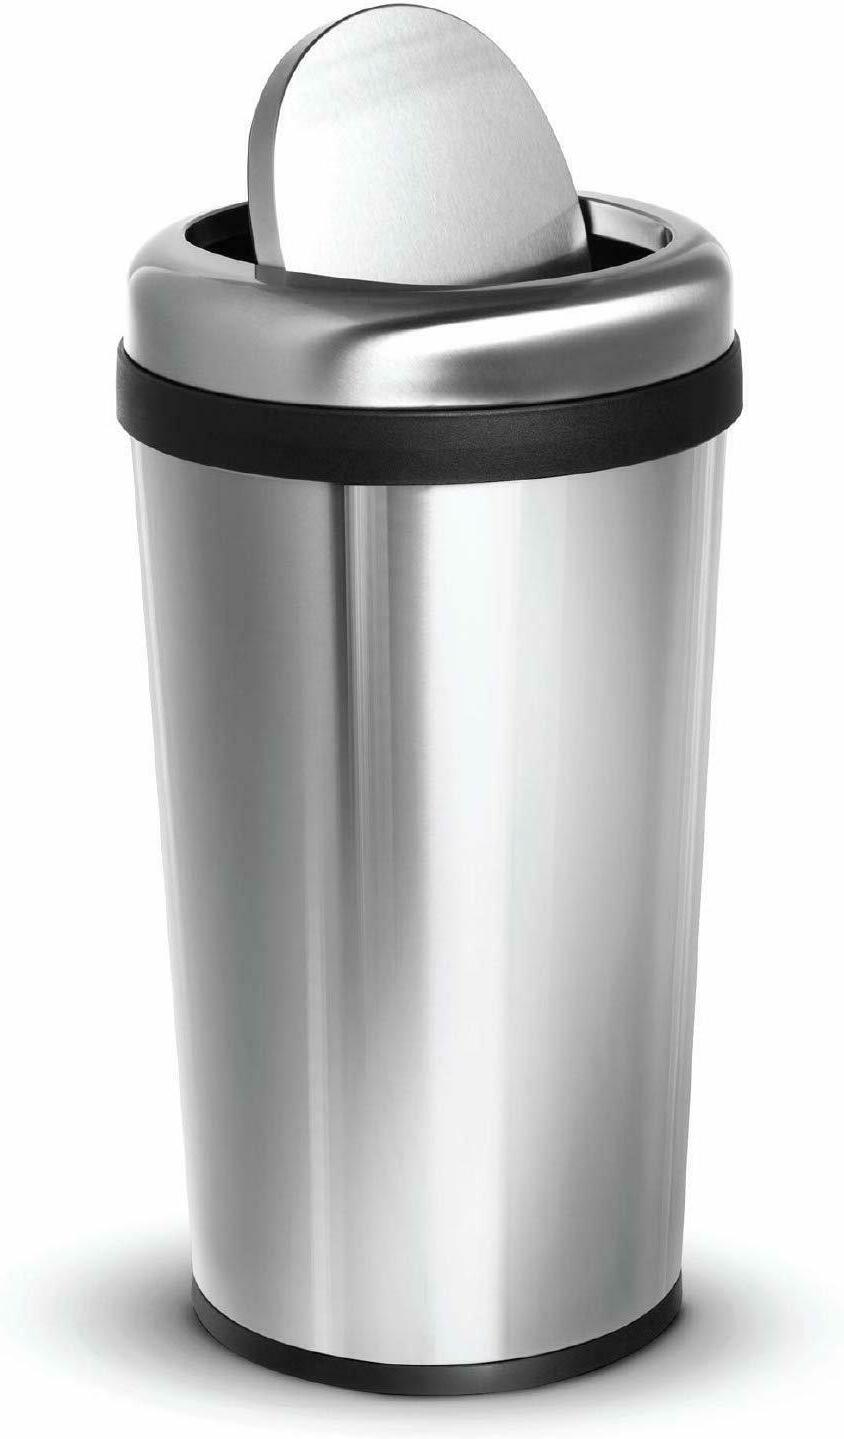 home zone living round kitchen trash can, 12g/45l